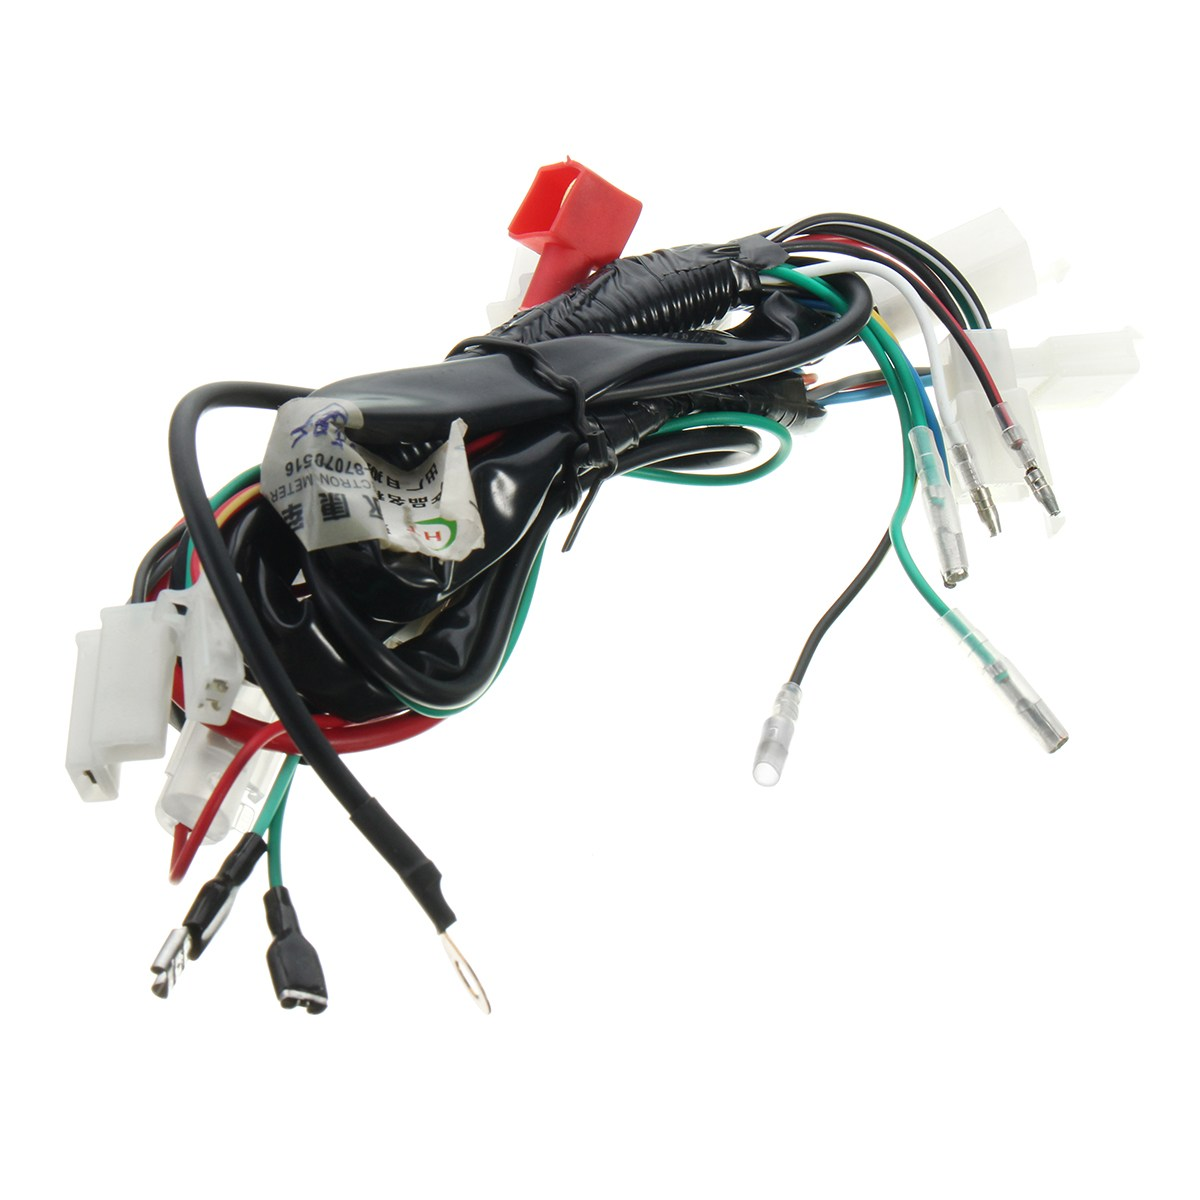 small resolution of motorcycle wiring harness machine electric start wiring loom harness pit bike atv quads 50cc 70cc 90cc 110cc 125cc in motorbike ingition from automobiles